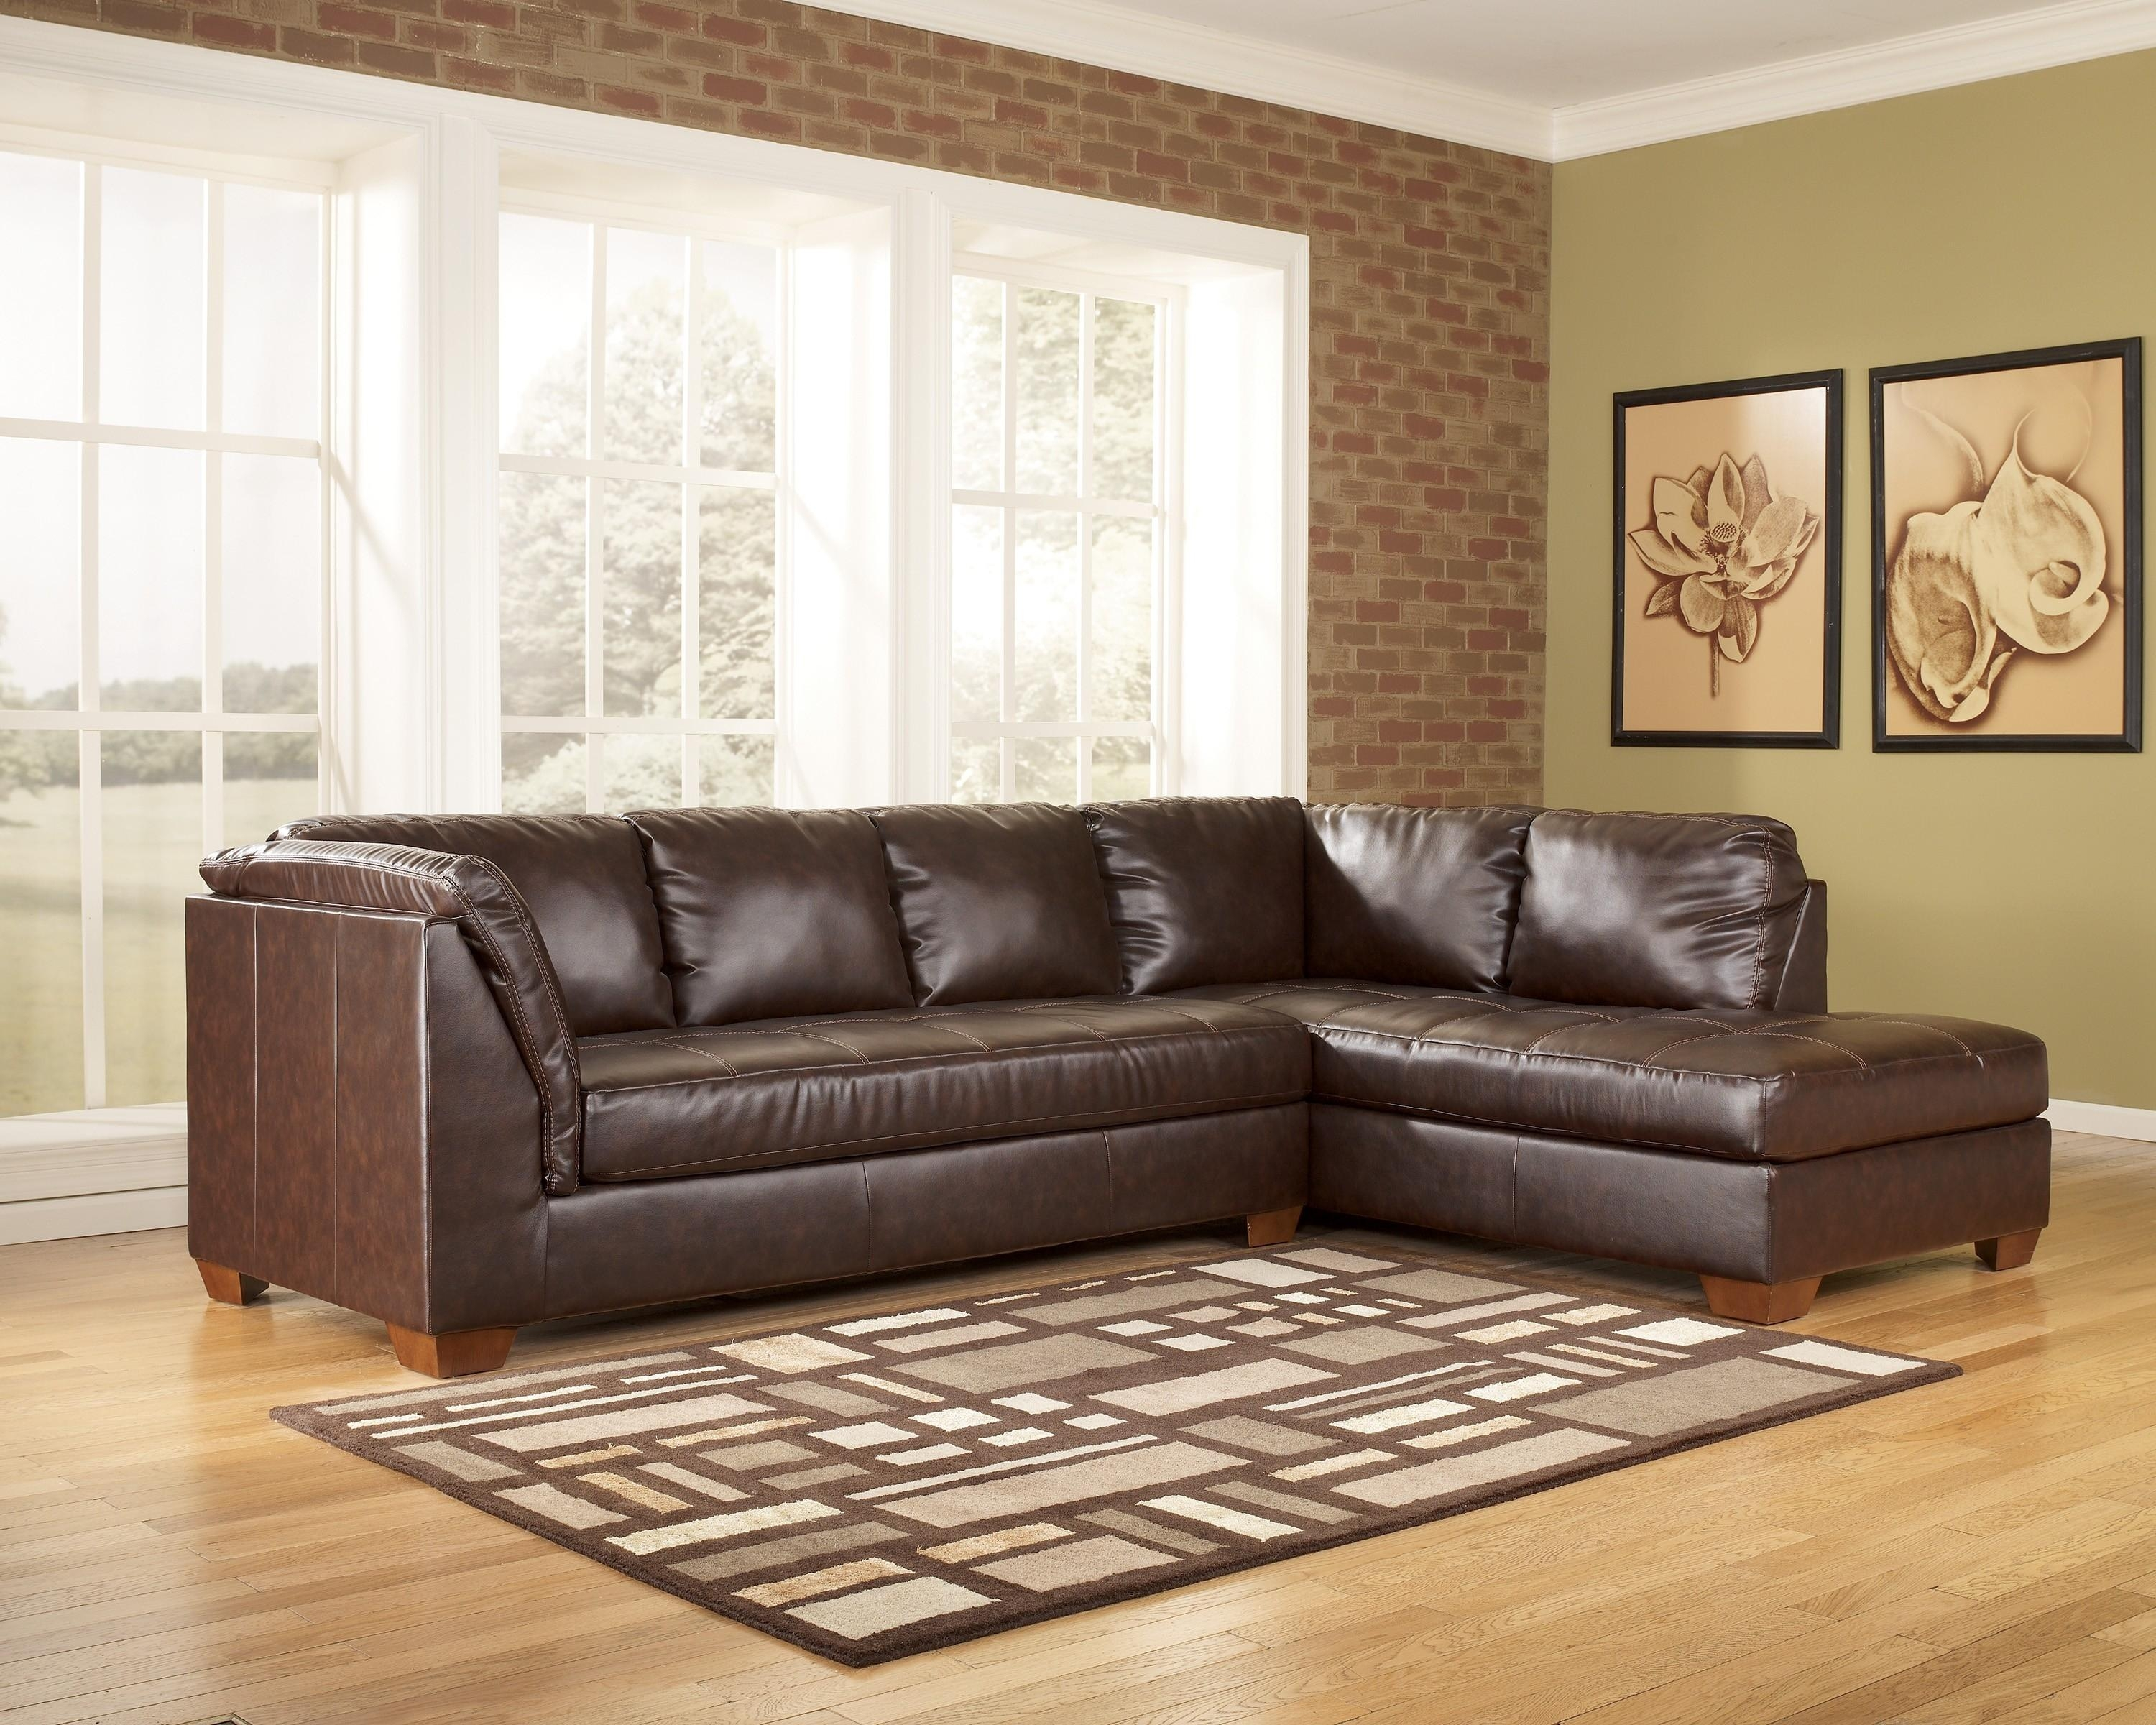 Sofas Center : Contemporary Sectional Sofas On Clearance Within Houston Sectional Sofa (Image 11 of 20)